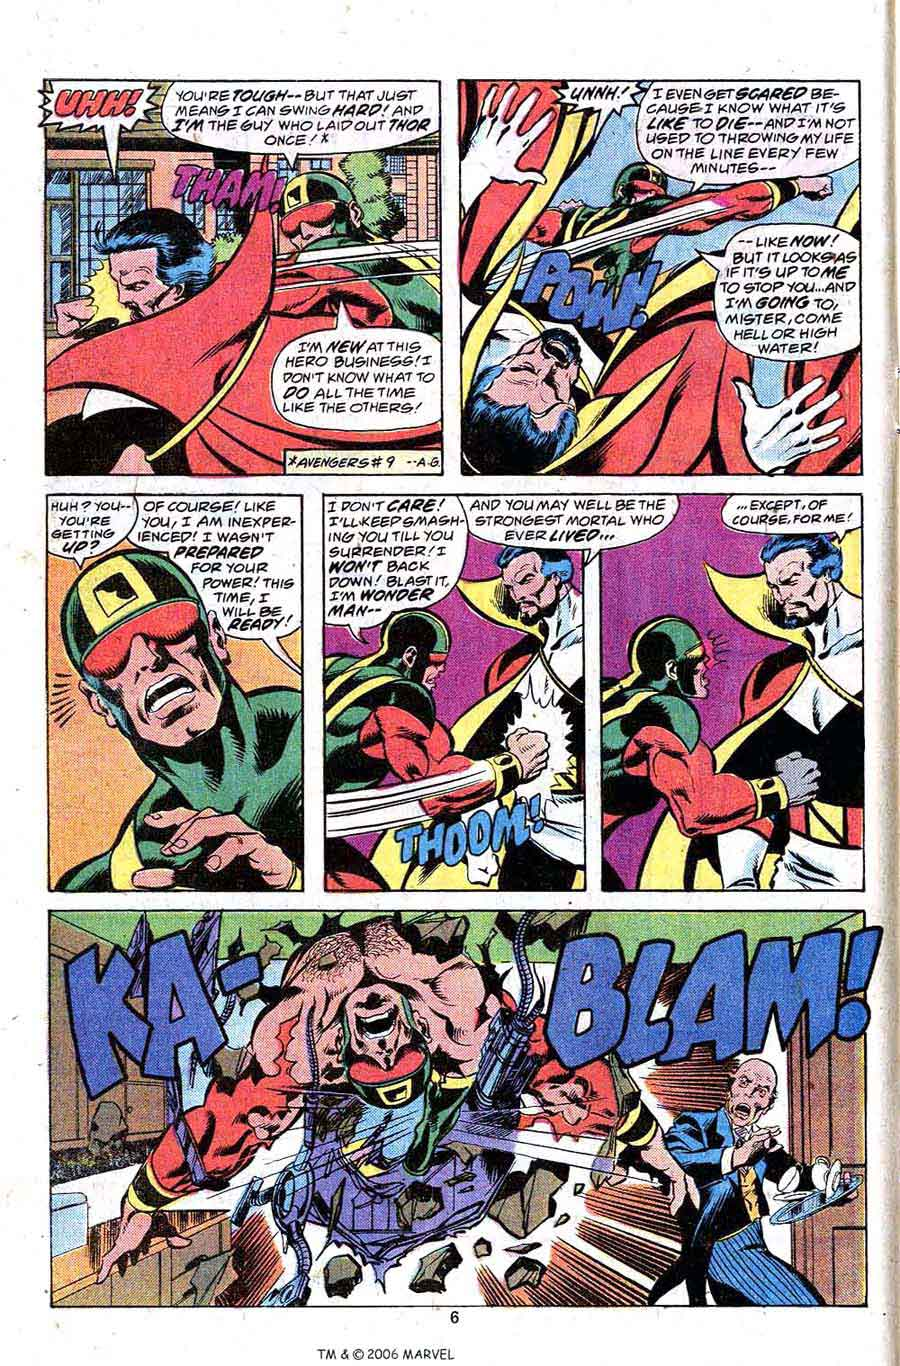 Avengers #165 marvel 1970s bronze age comic book page art by John Byrne